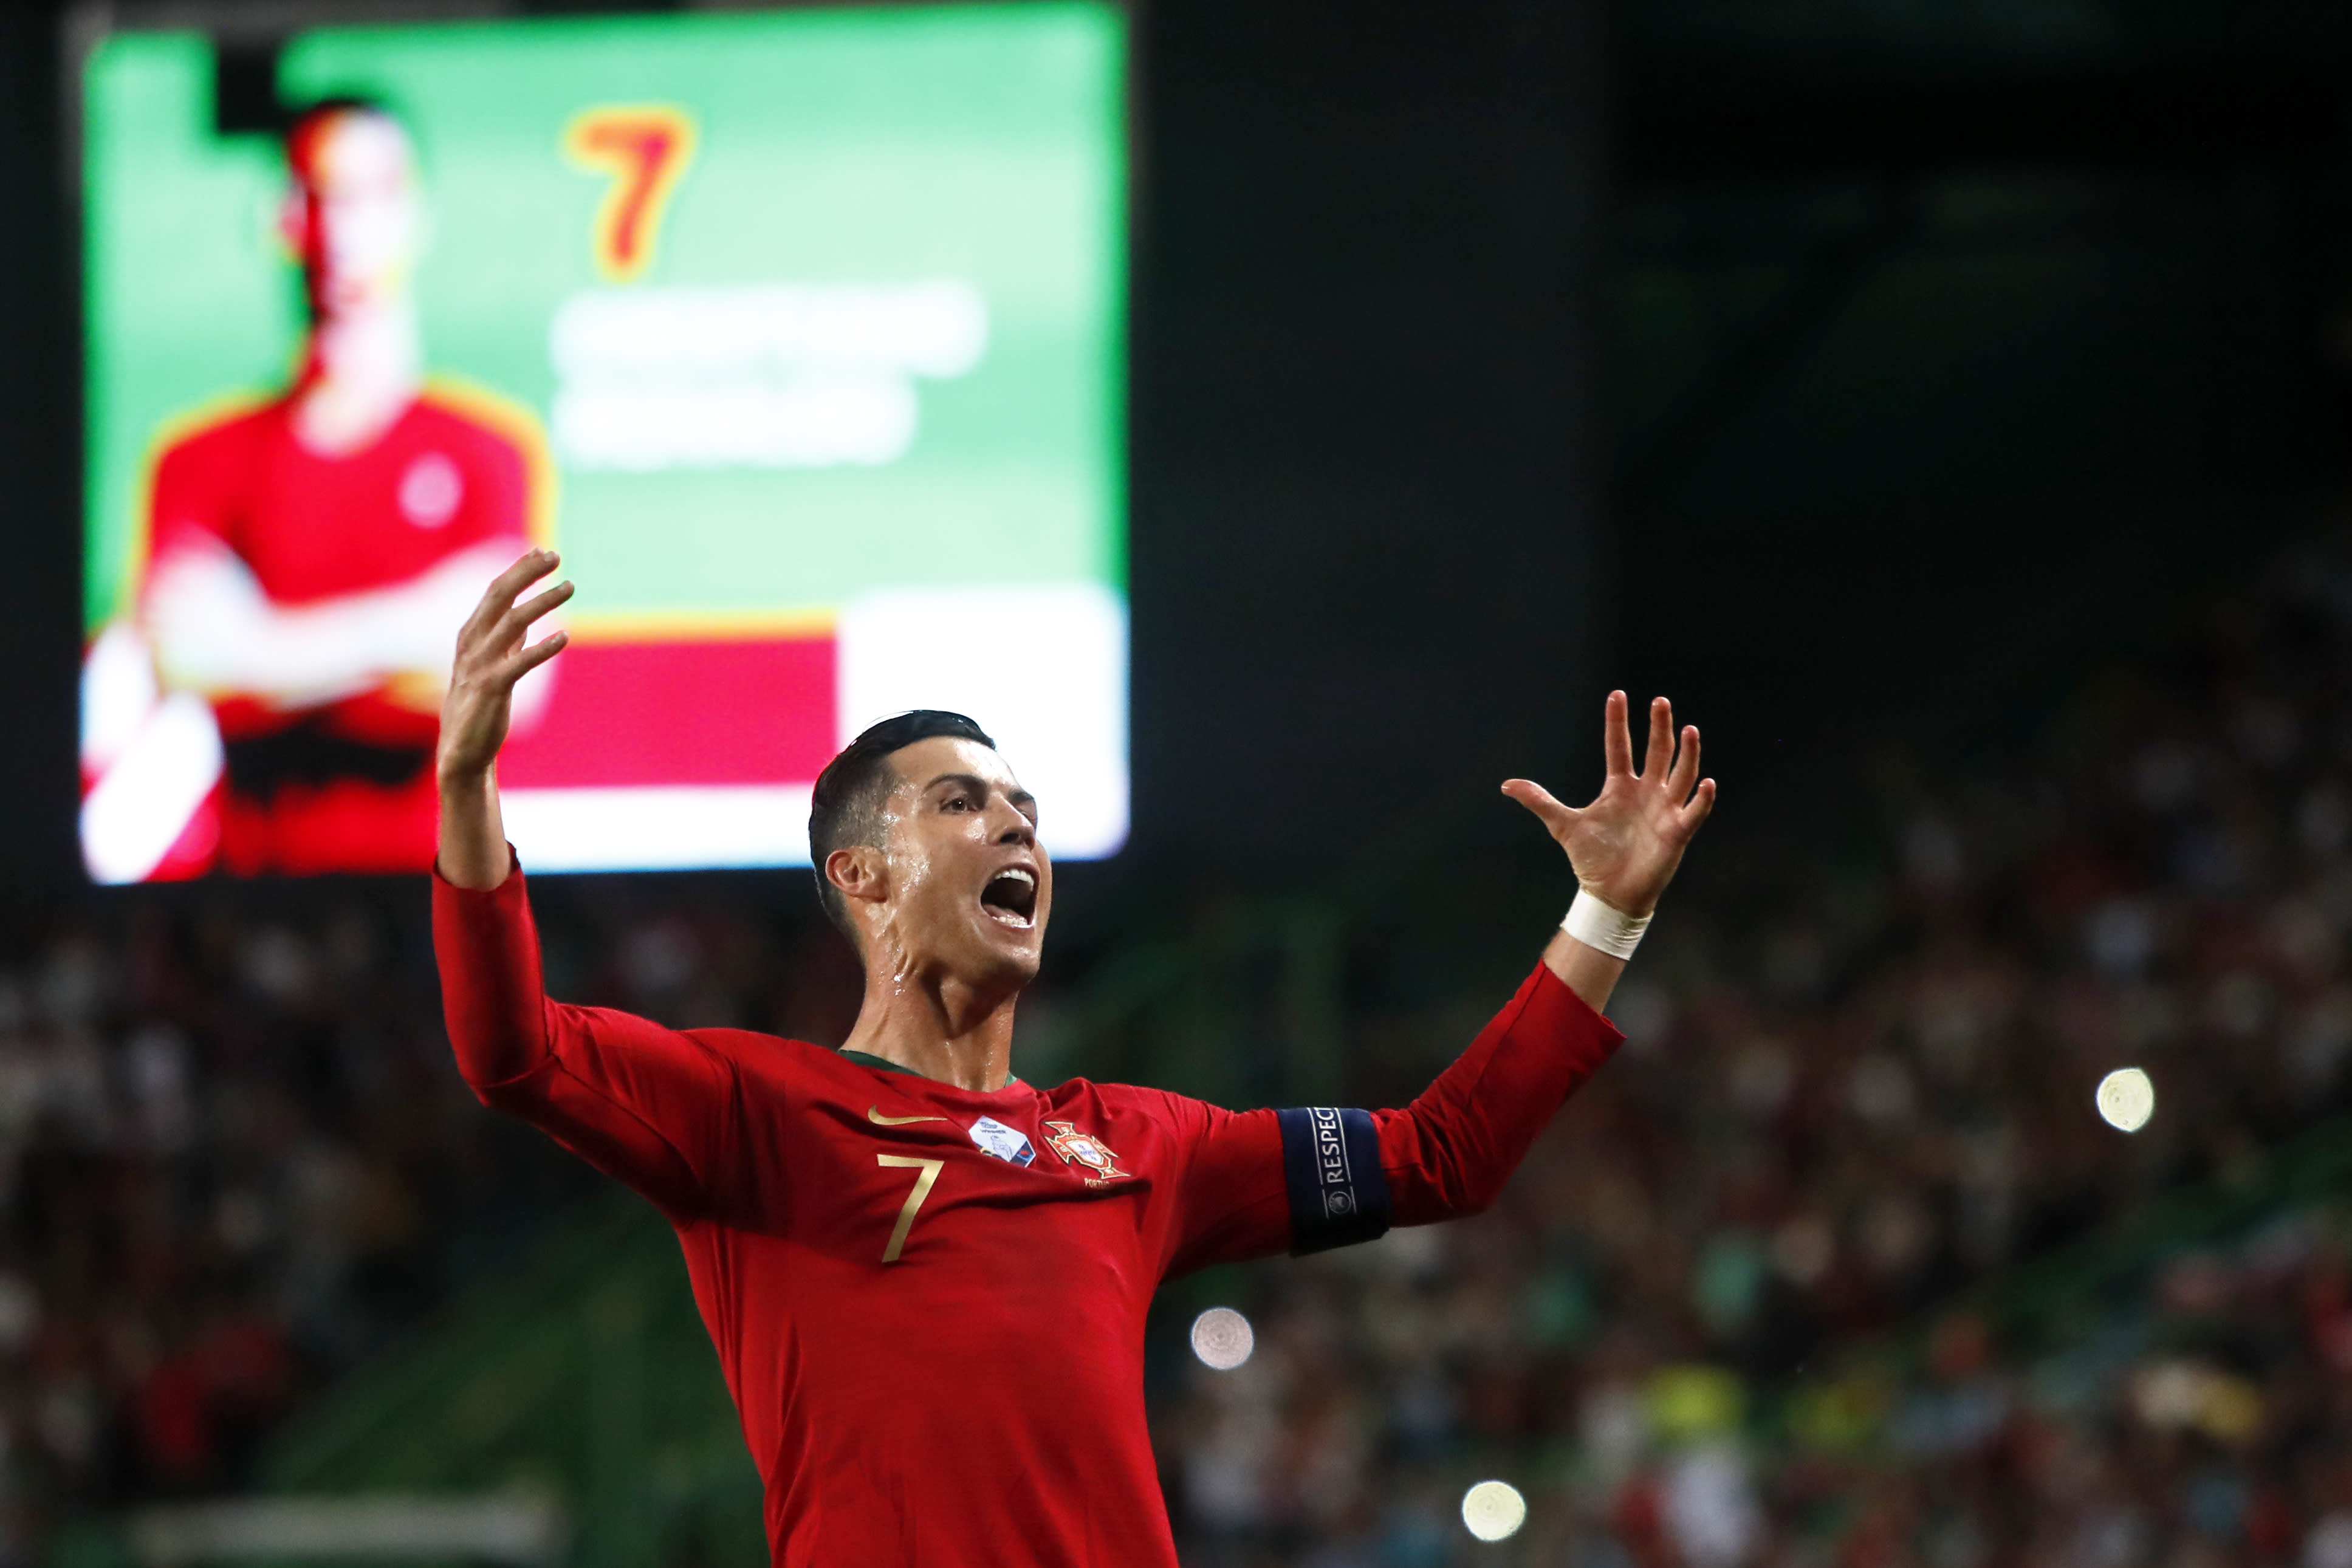 Portugal's Cristiano Ronaldo celebrates after scoring his side's second goal during a Euro 2020 group B qualifying soccer match between Portugal and Luxembourg at the Jose Alvalade stadium in Lisbon, Friday, Oct 11, 2019. (AP Photo/Armando Franca)